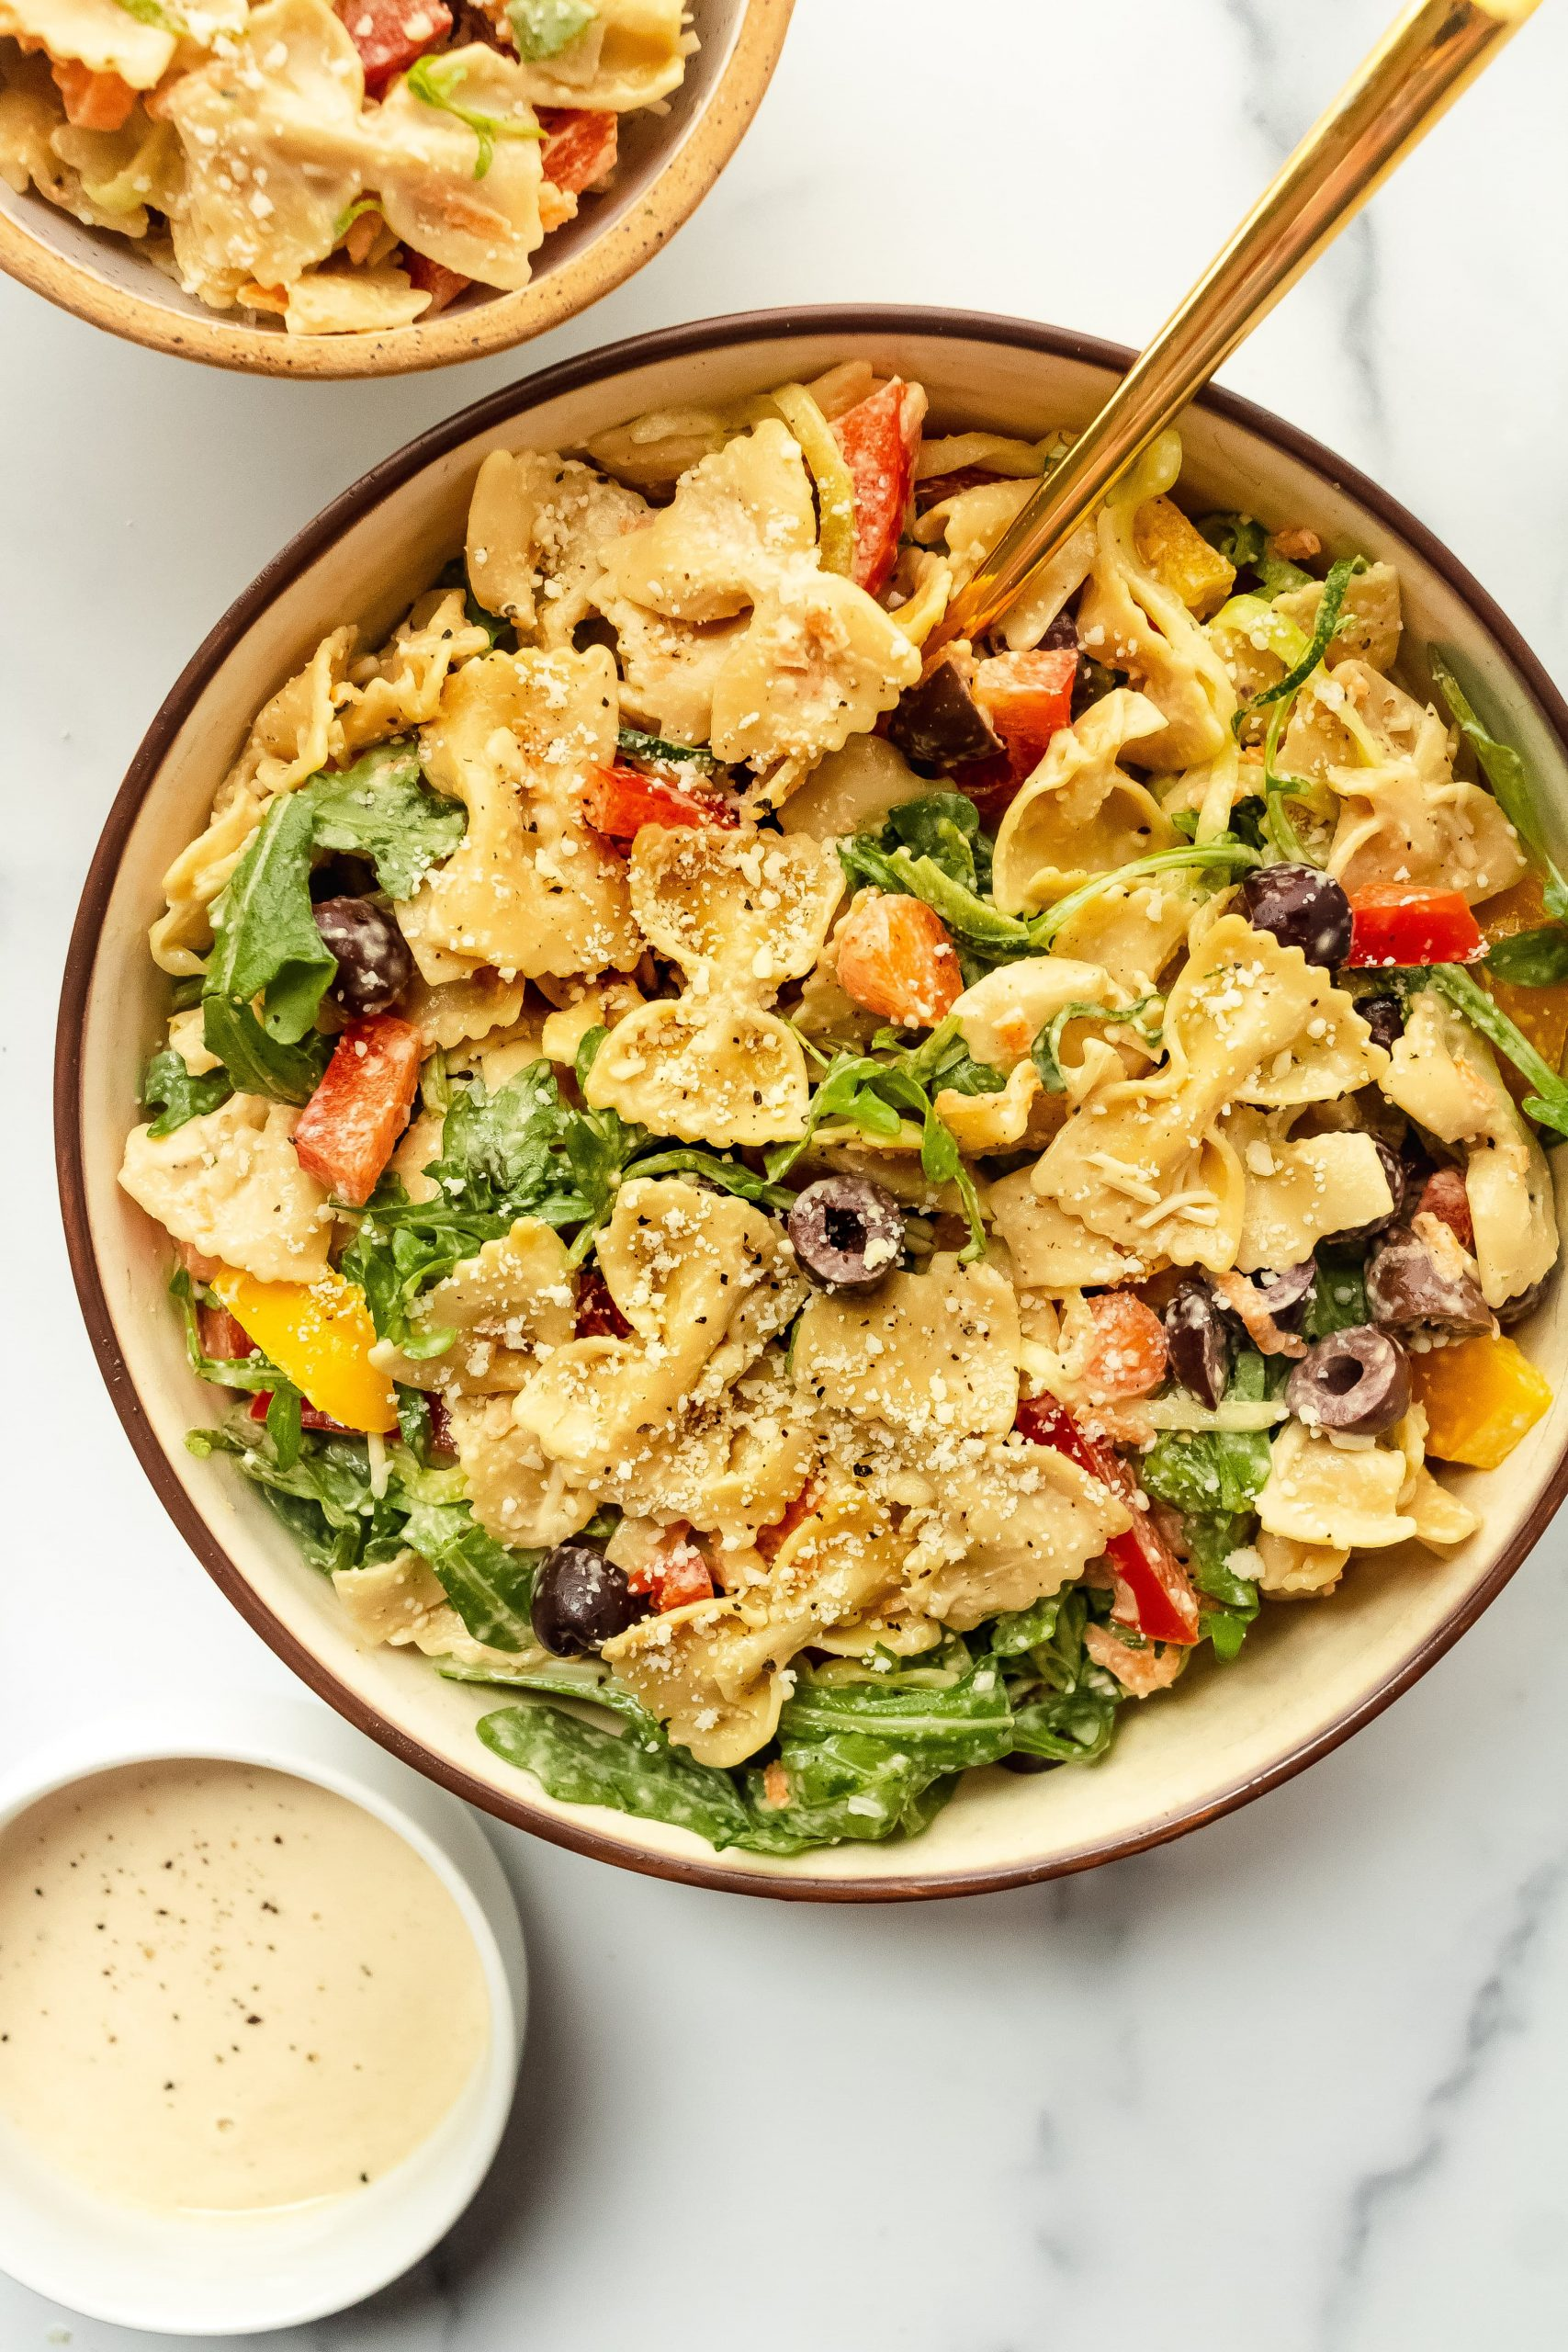 kitchen sink pasta salad with creamy tahini dressing